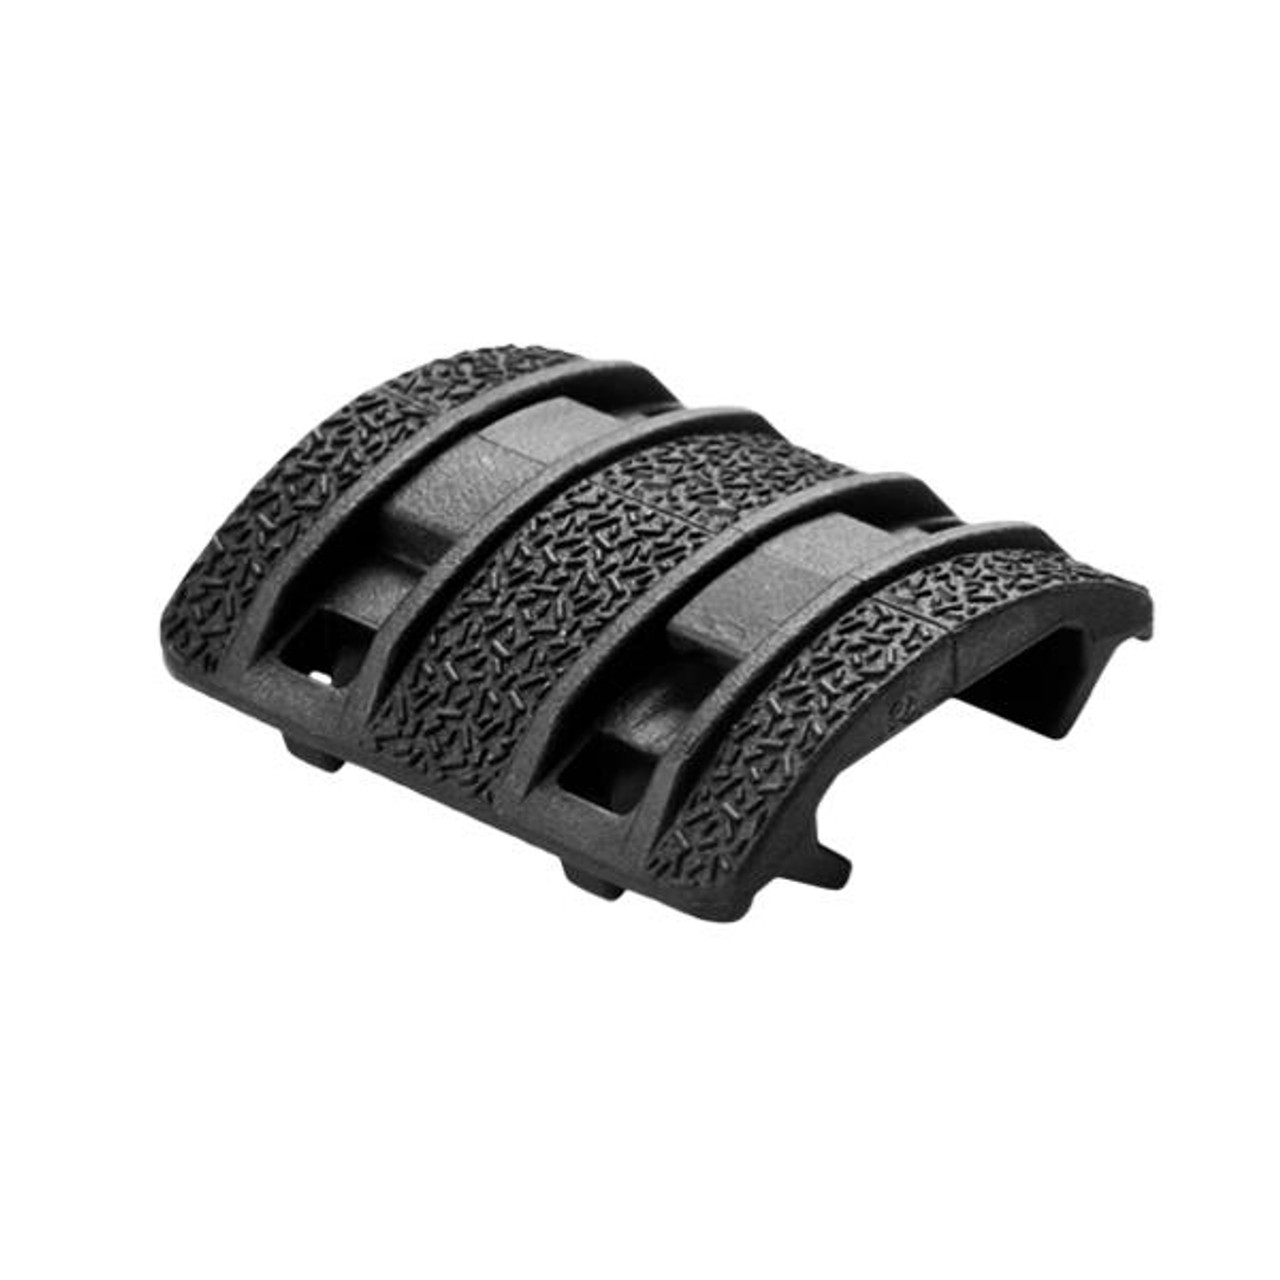 Magpul - XTM Rail Panels (8pk) - Black